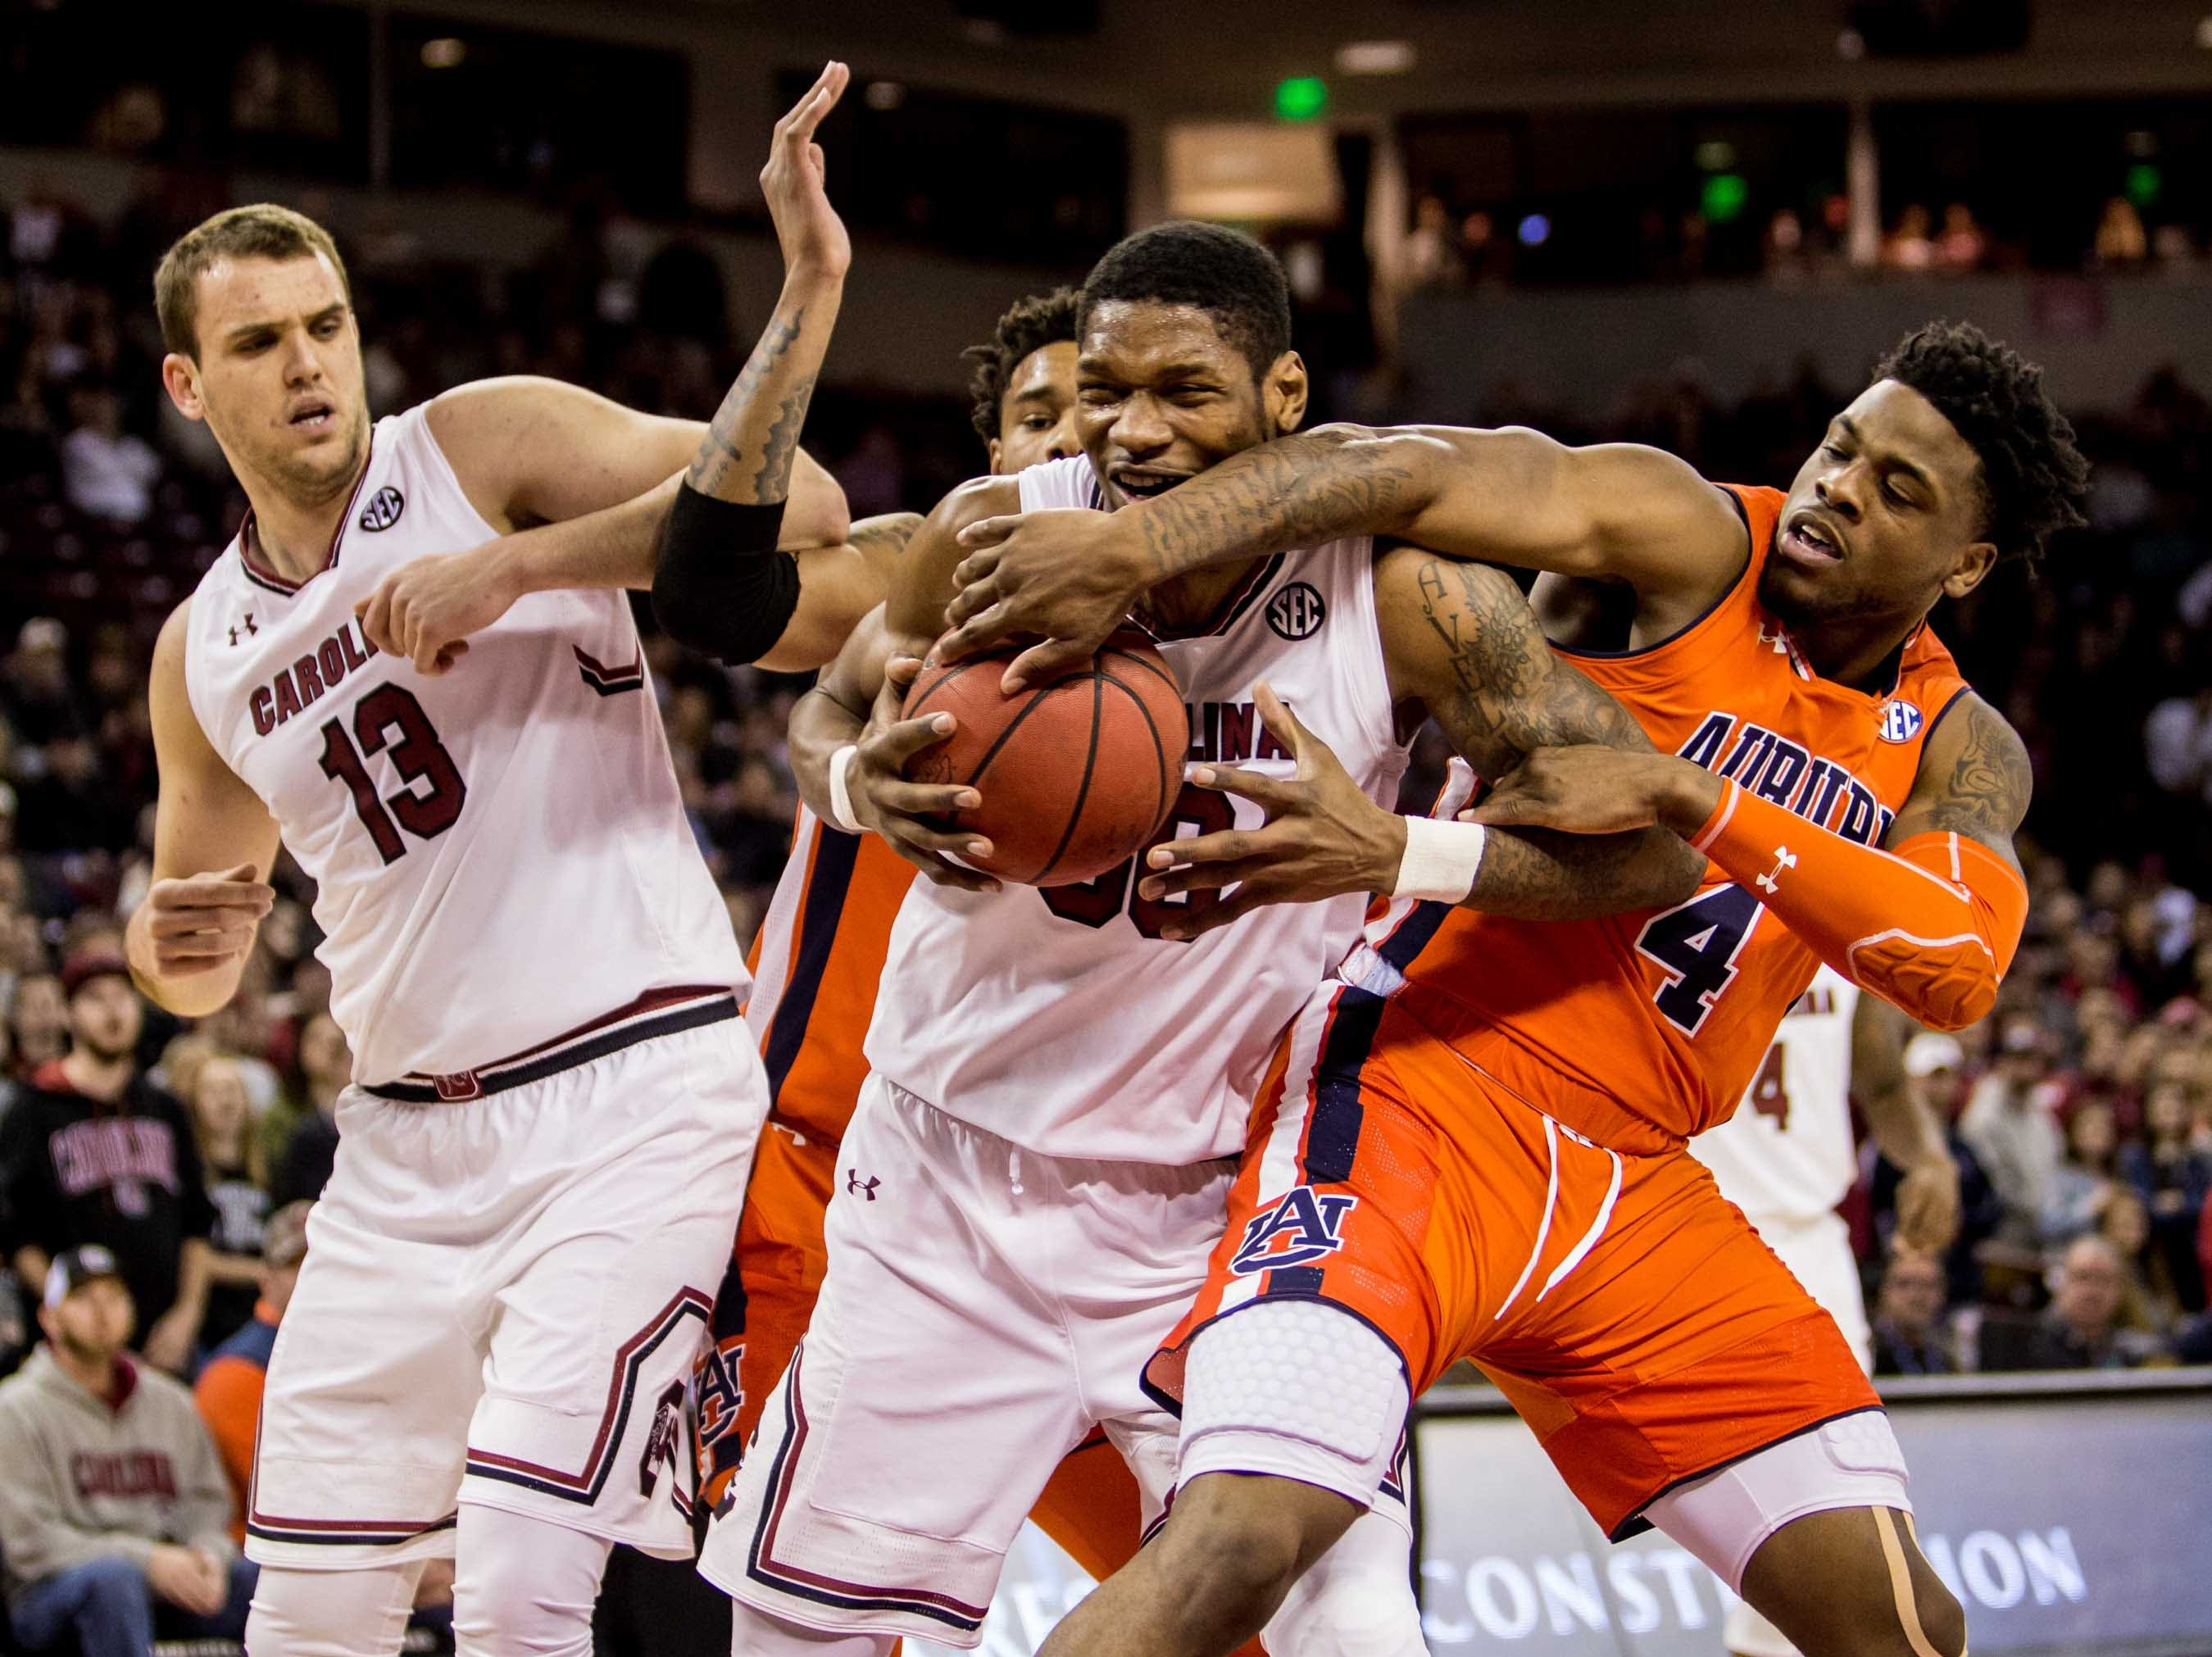 Jan 22, 2019; Columbia, SC, USA; South Carolina Gamecocks forward Chris Silva (30) is fouled by Auburn Tigers guard Malik Dunbar (4) in the first half at Colonial Life Arena. Mandatory Credit: Jeff Blake-USA TODAY Sports